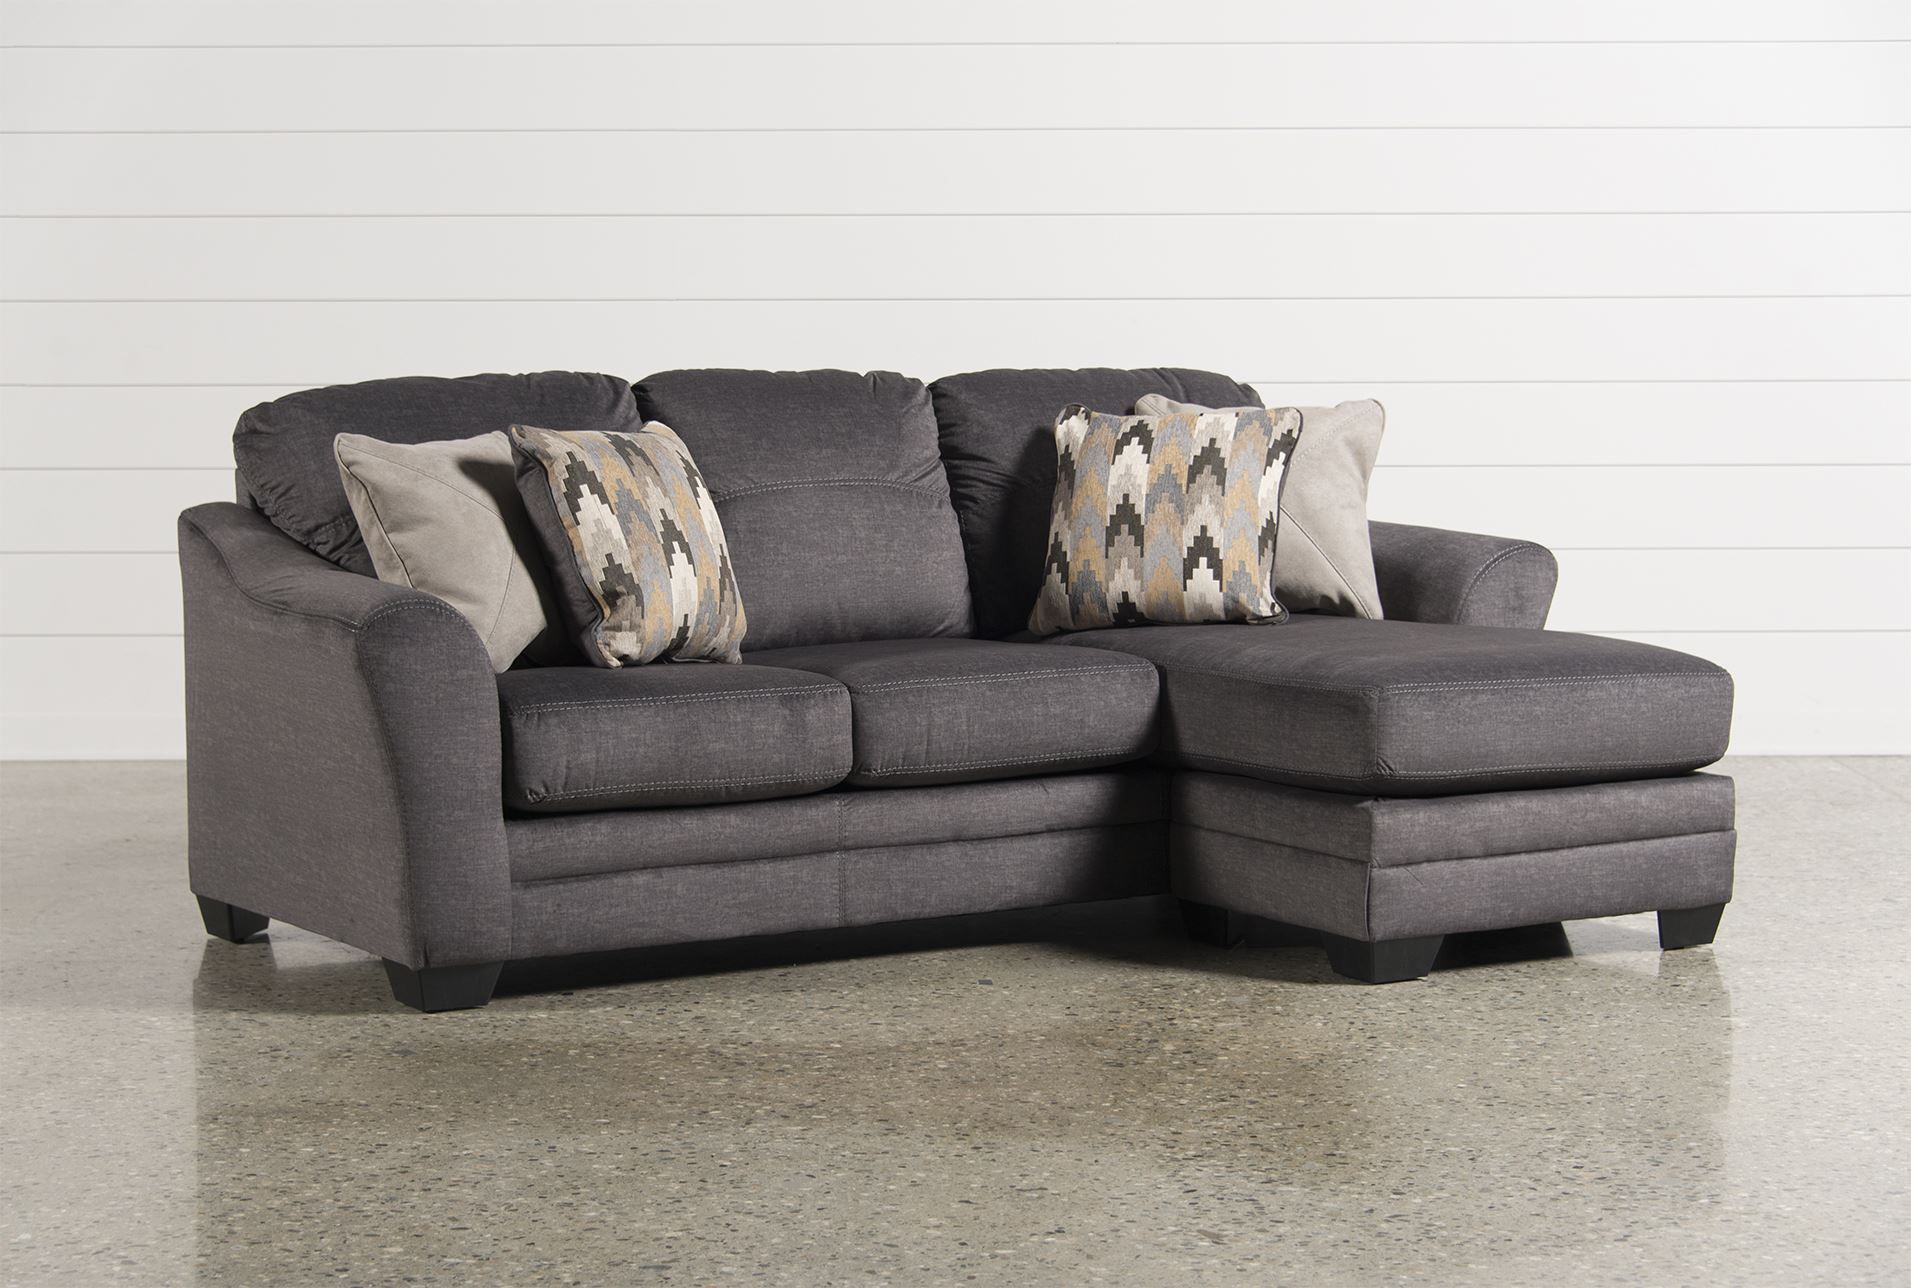 Outstanding Braxlin Charcoal Sofa Chaise Signature Our New Digs Onthecornerstone Fun Painted Chair Ideas Images Onthecornerstoneorg